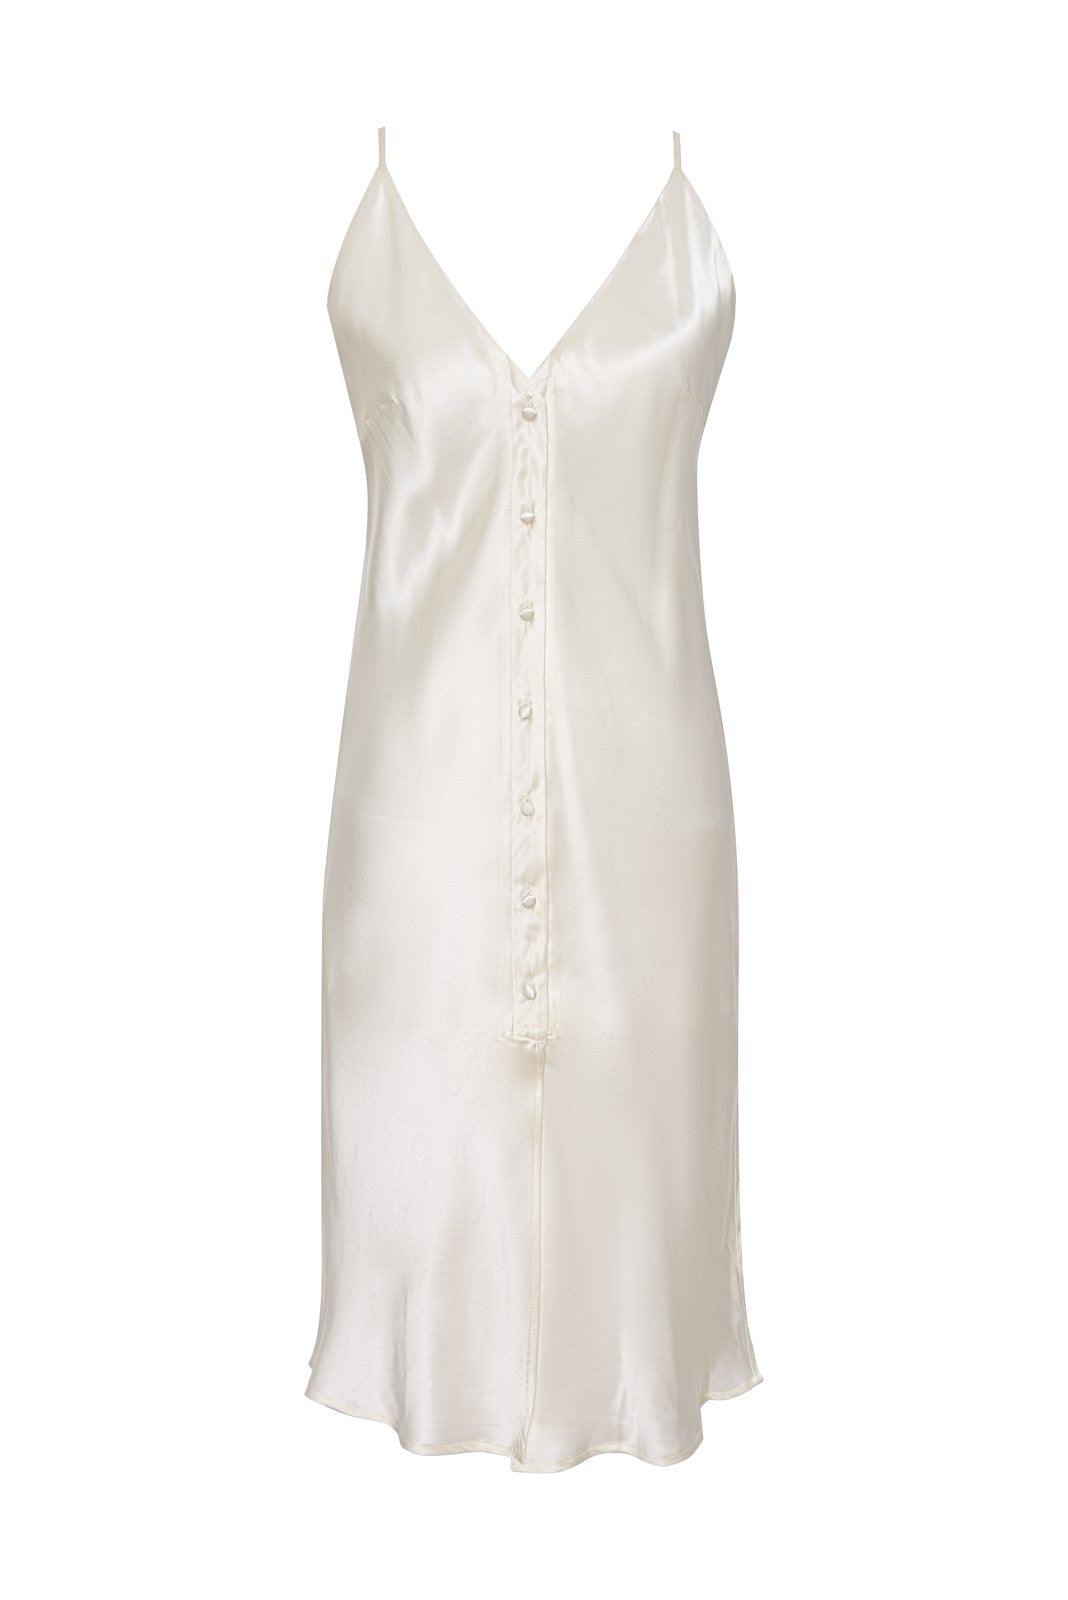 Silk Button Camisole - Dove